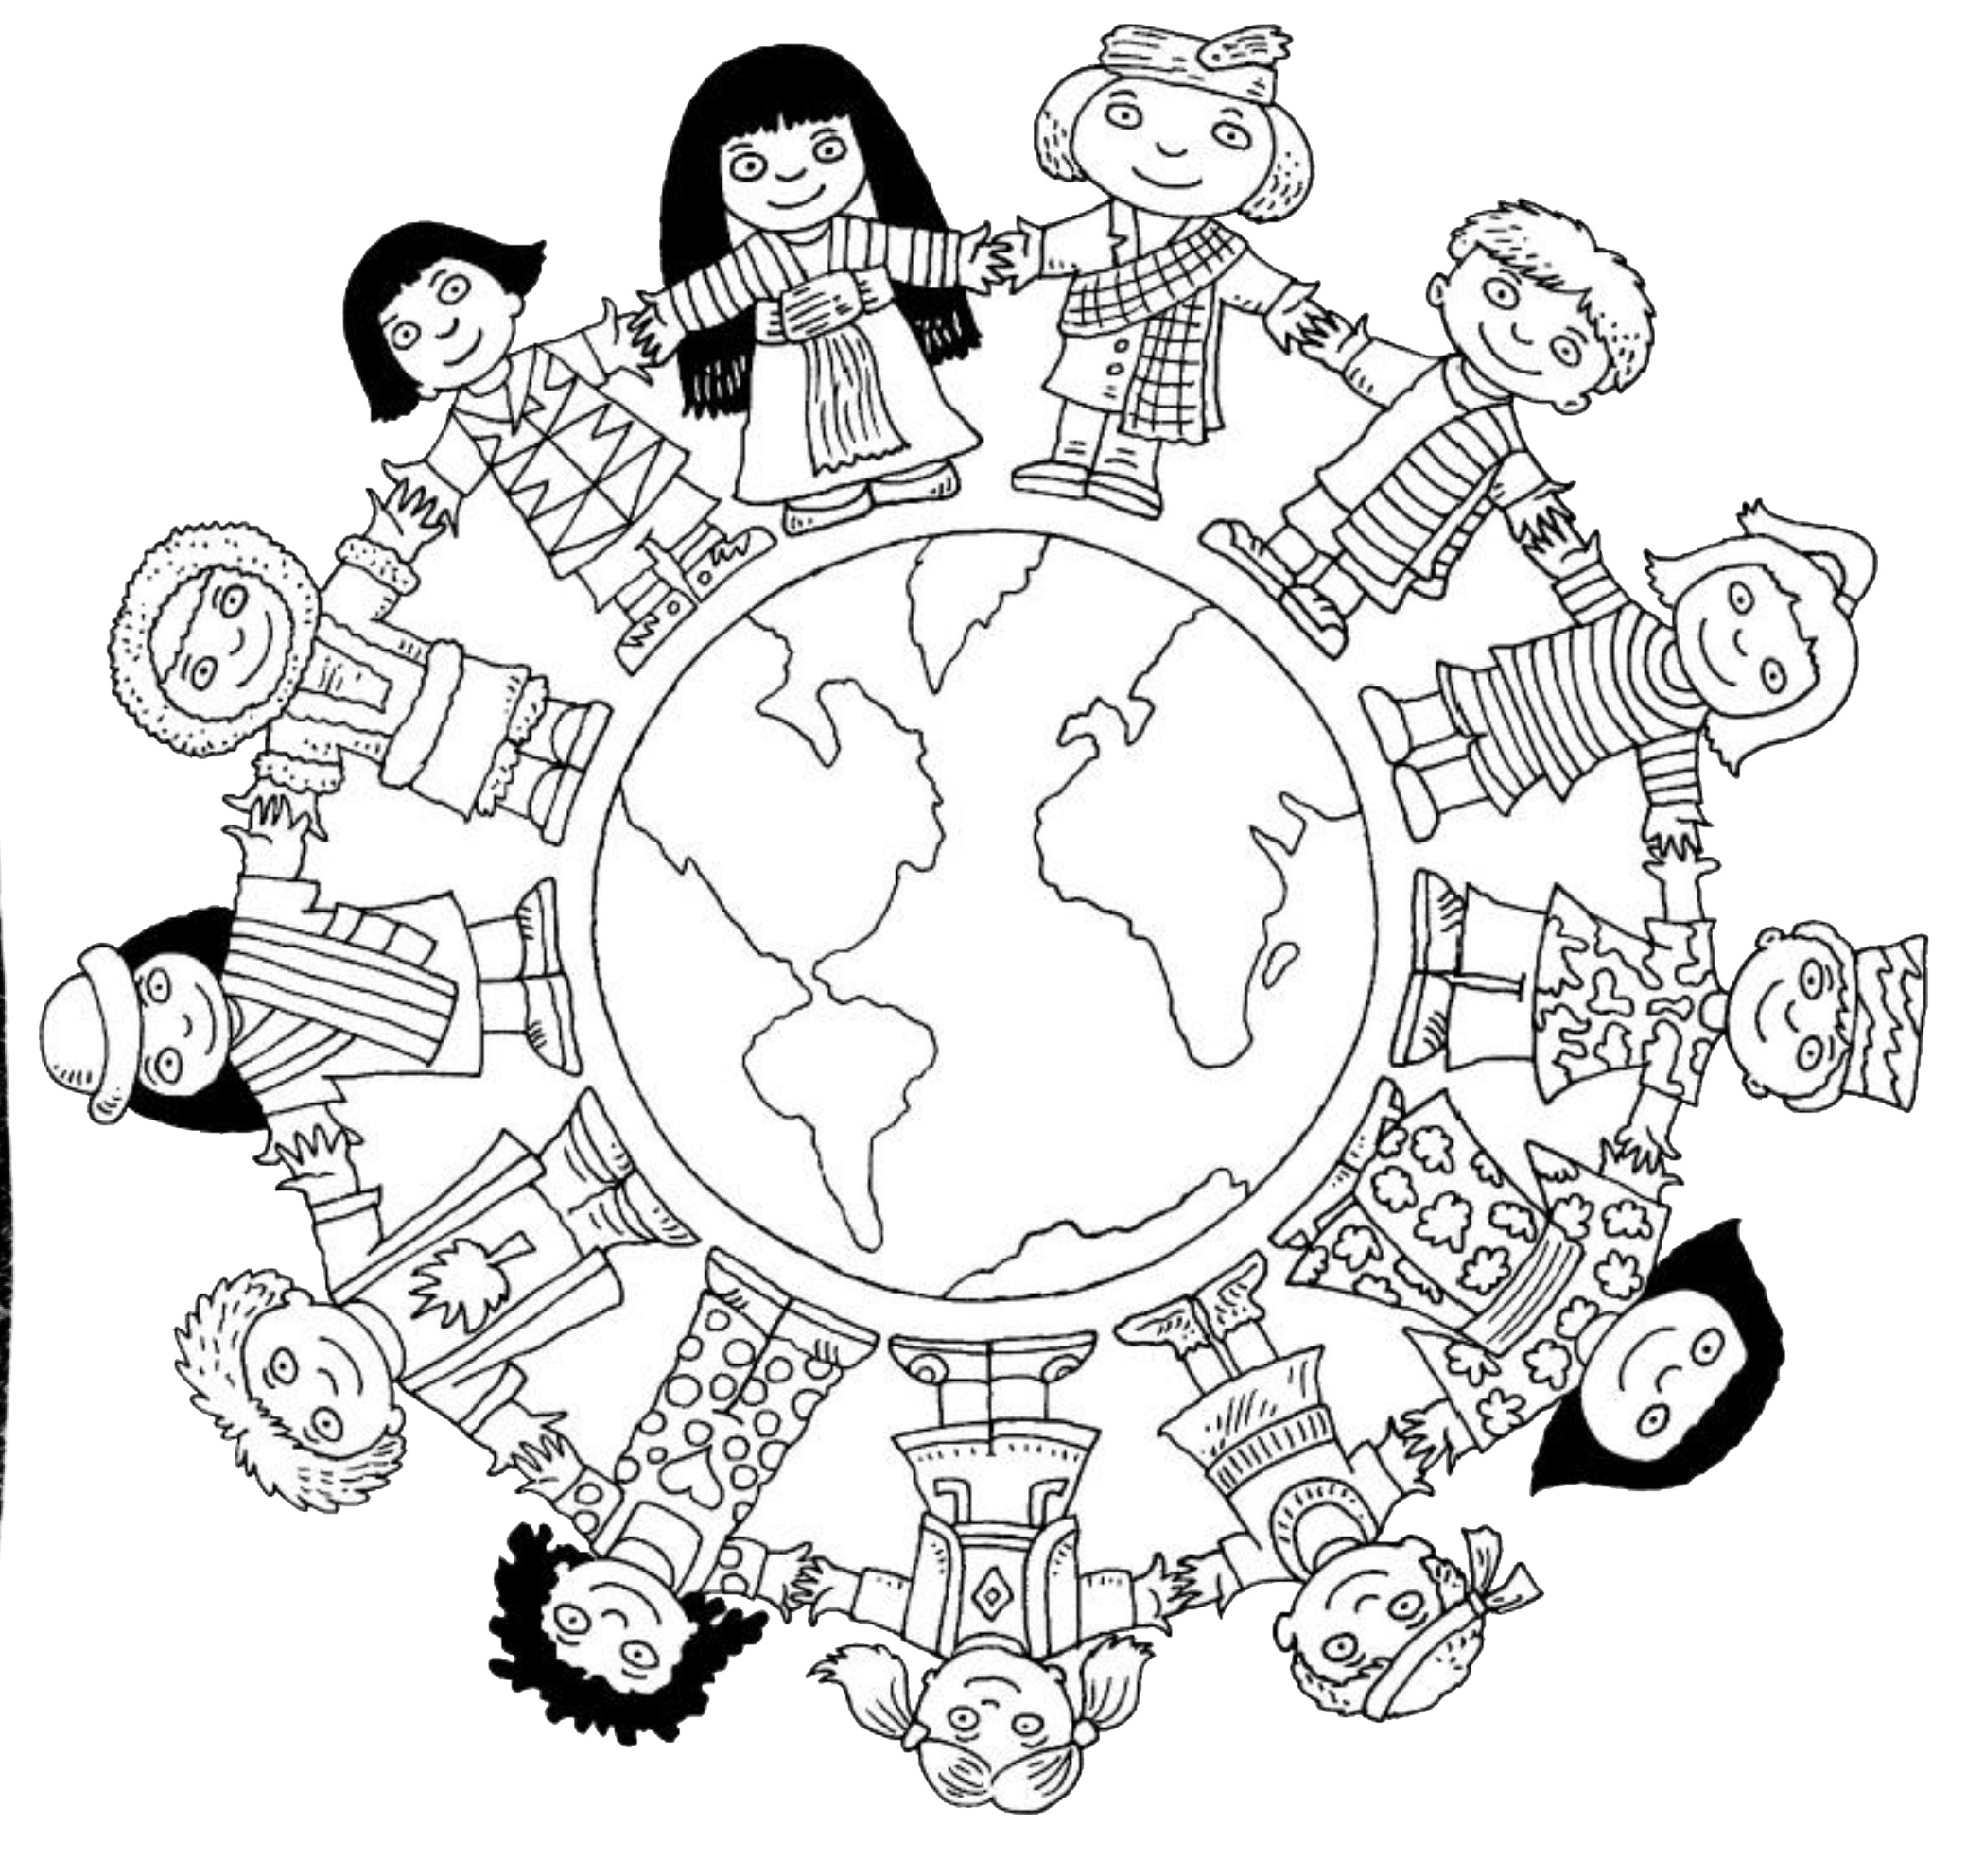 world coloring page jeneart the world coloring page coloring world page